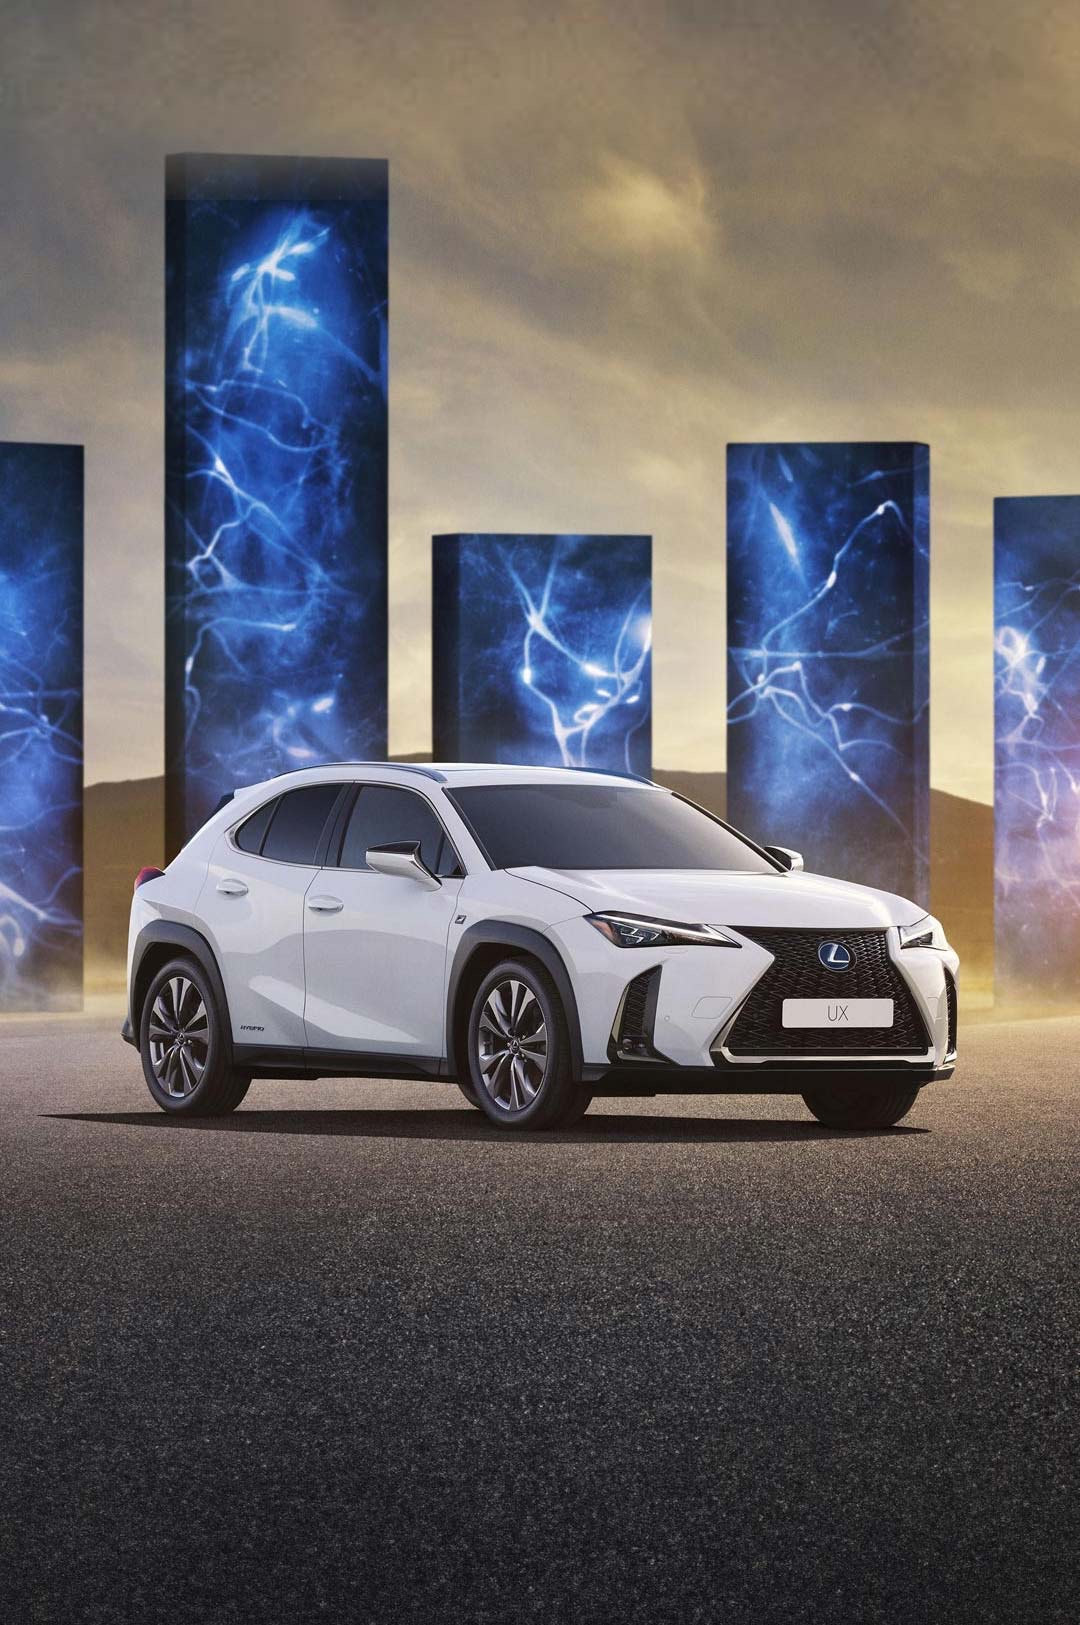 lexus ux 250h dealer homepage offer 2021